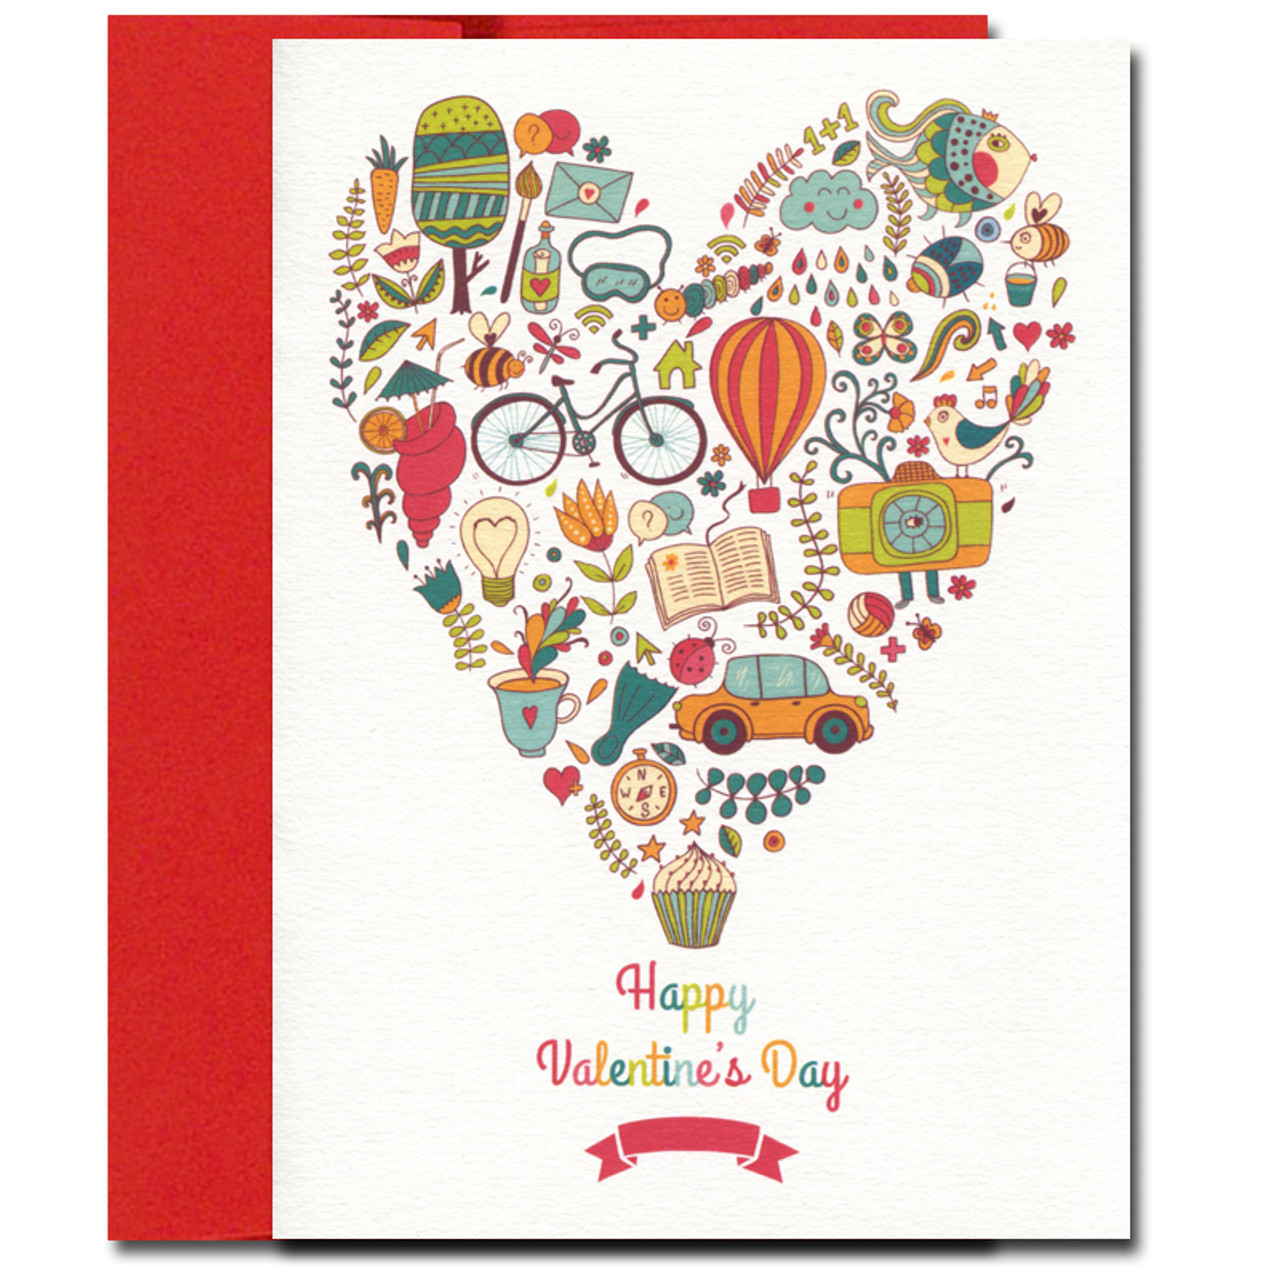 Valentine Card has multi-colored activities inside a heart and the greeting: Happy Valentine's Day